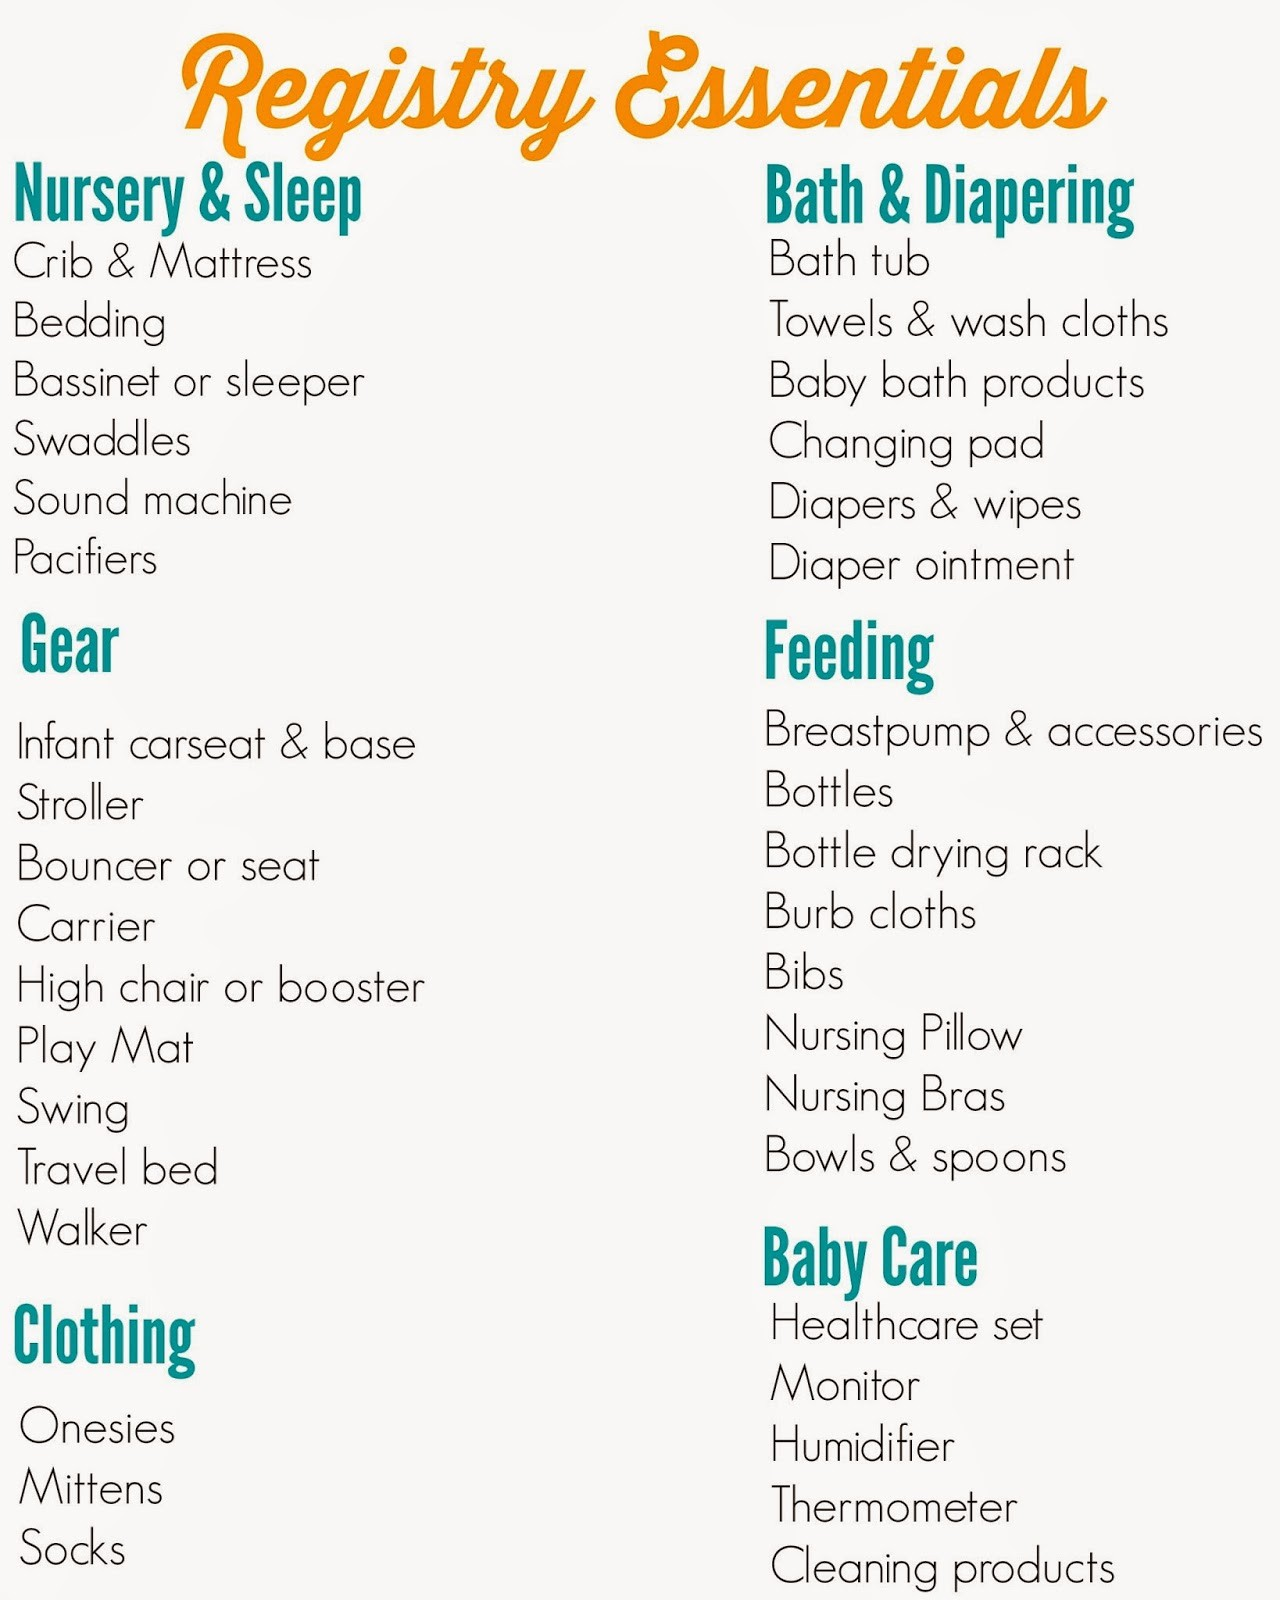 New Born Baby Check List Best Of the Ultimate Registry Checklist the Chirping Moms